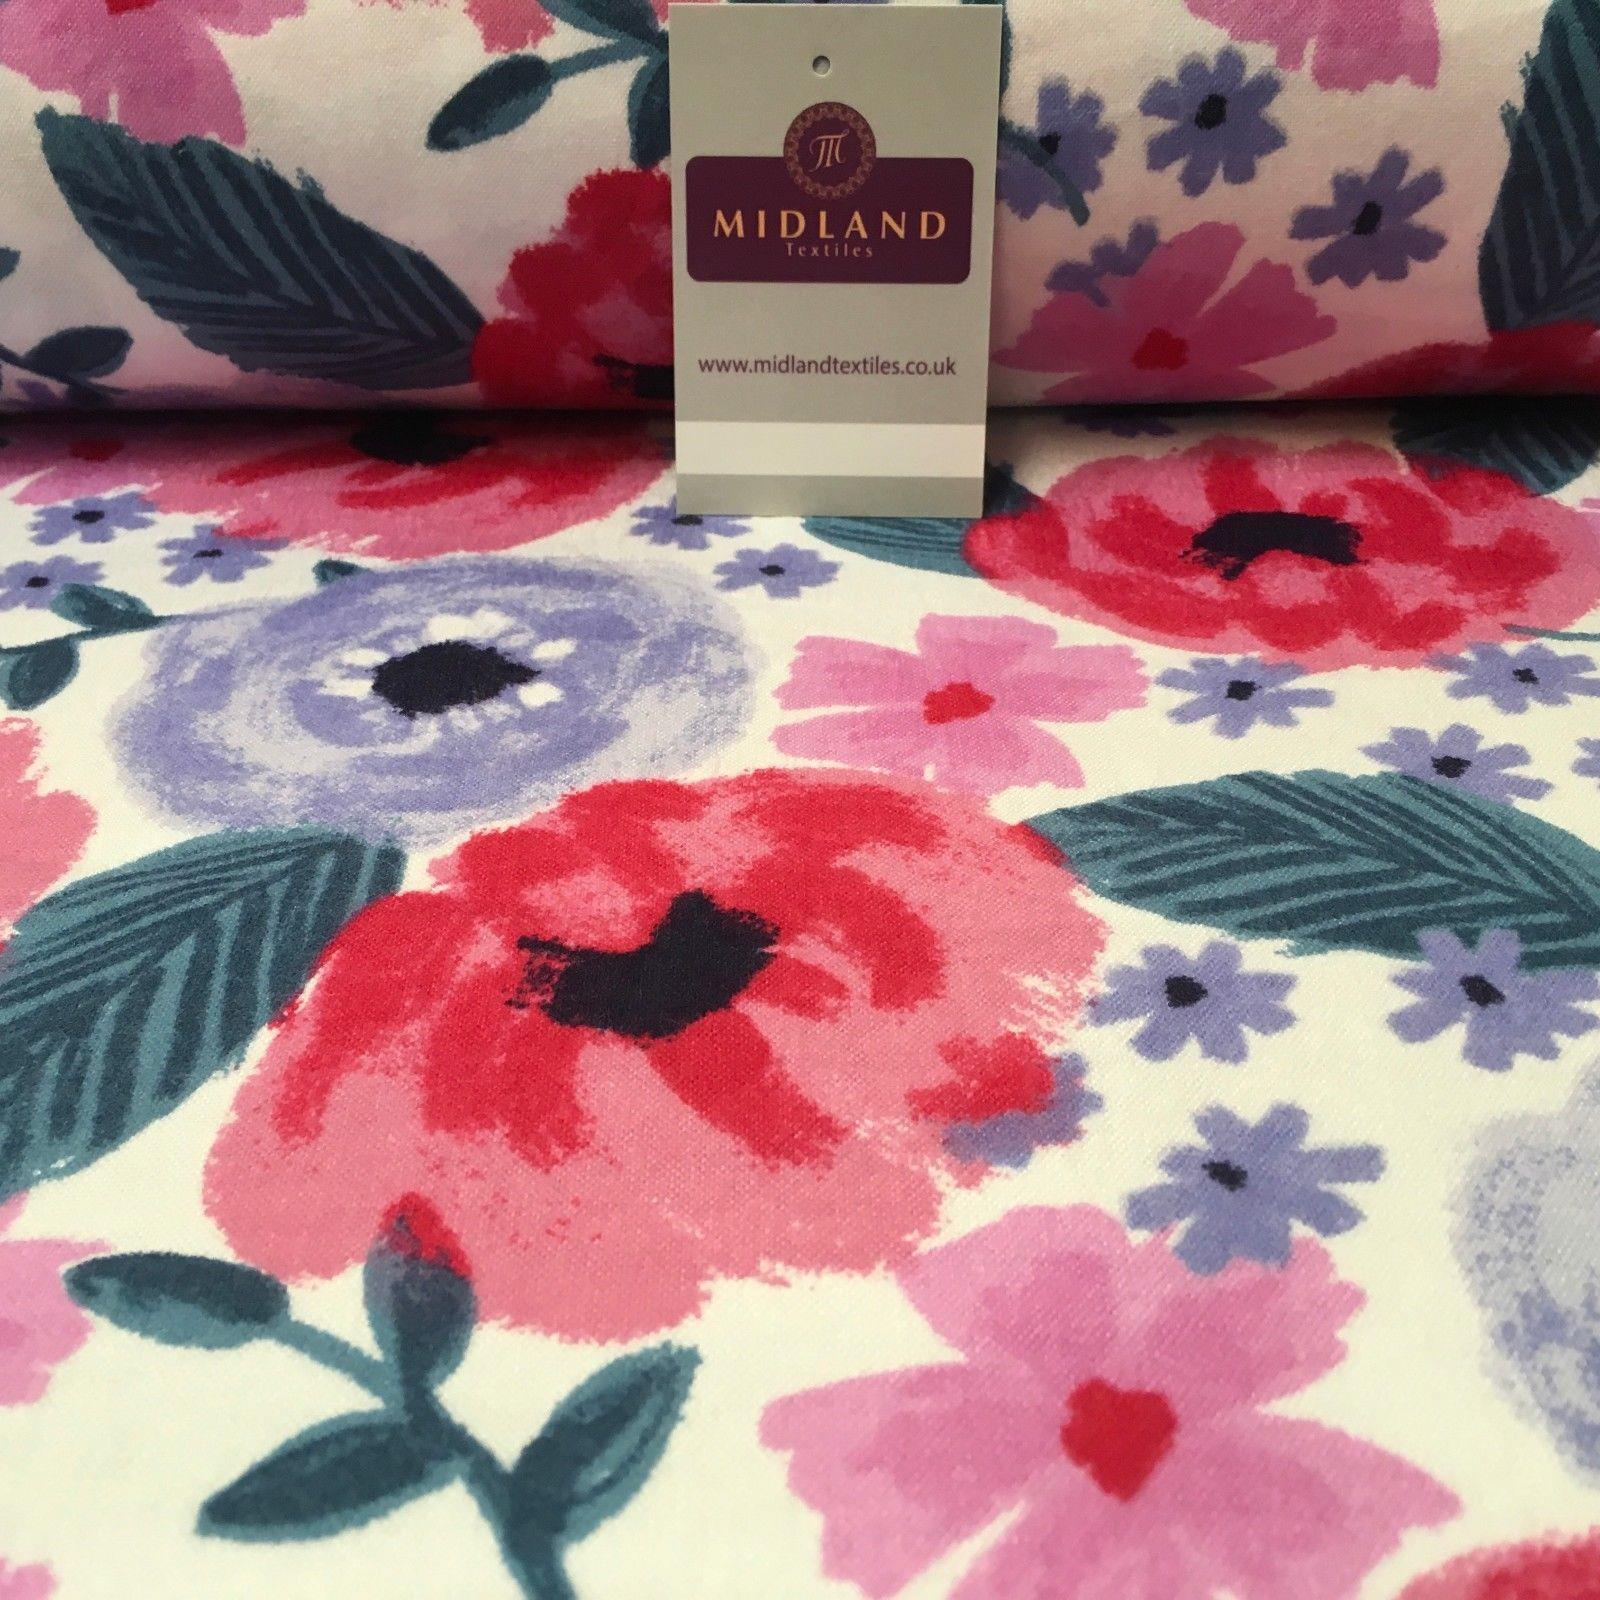 "White Large Floral Cotton Wynciette Soft Brushed Flannel Fabric 44"" MK988-19"